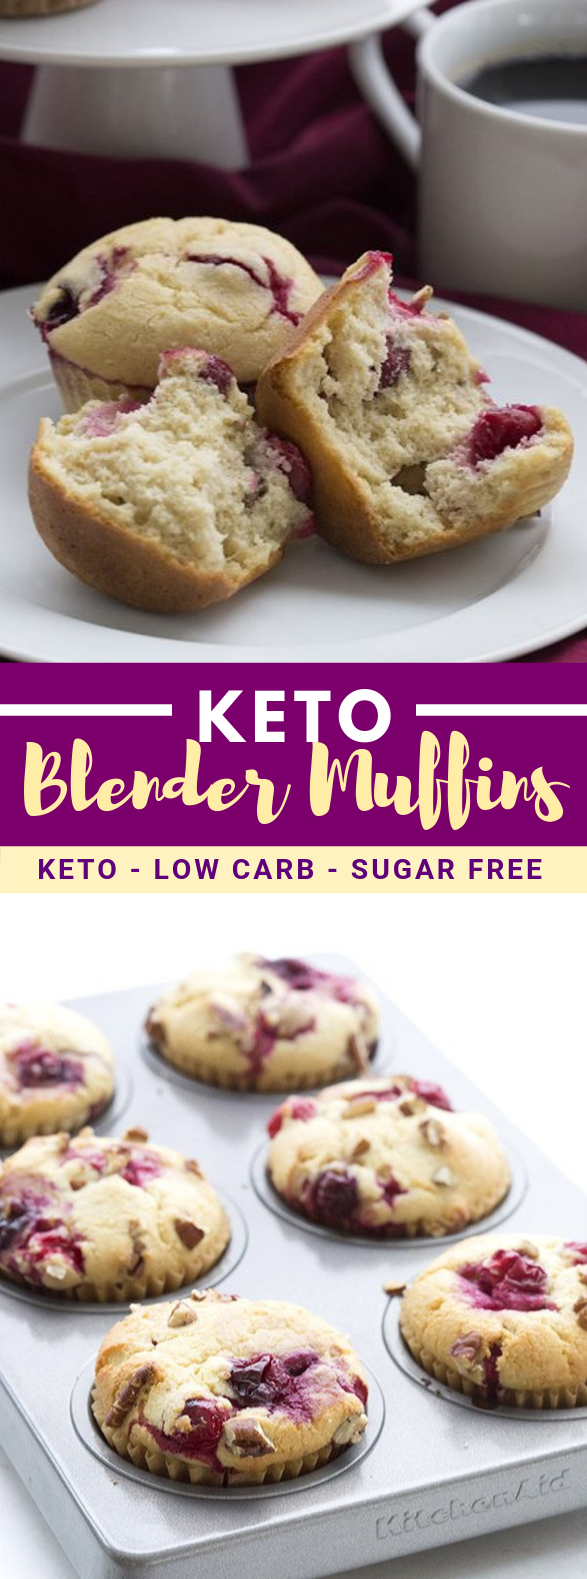 EASY LOW CARB CRANBERRY MUFFINS #healthy #diet